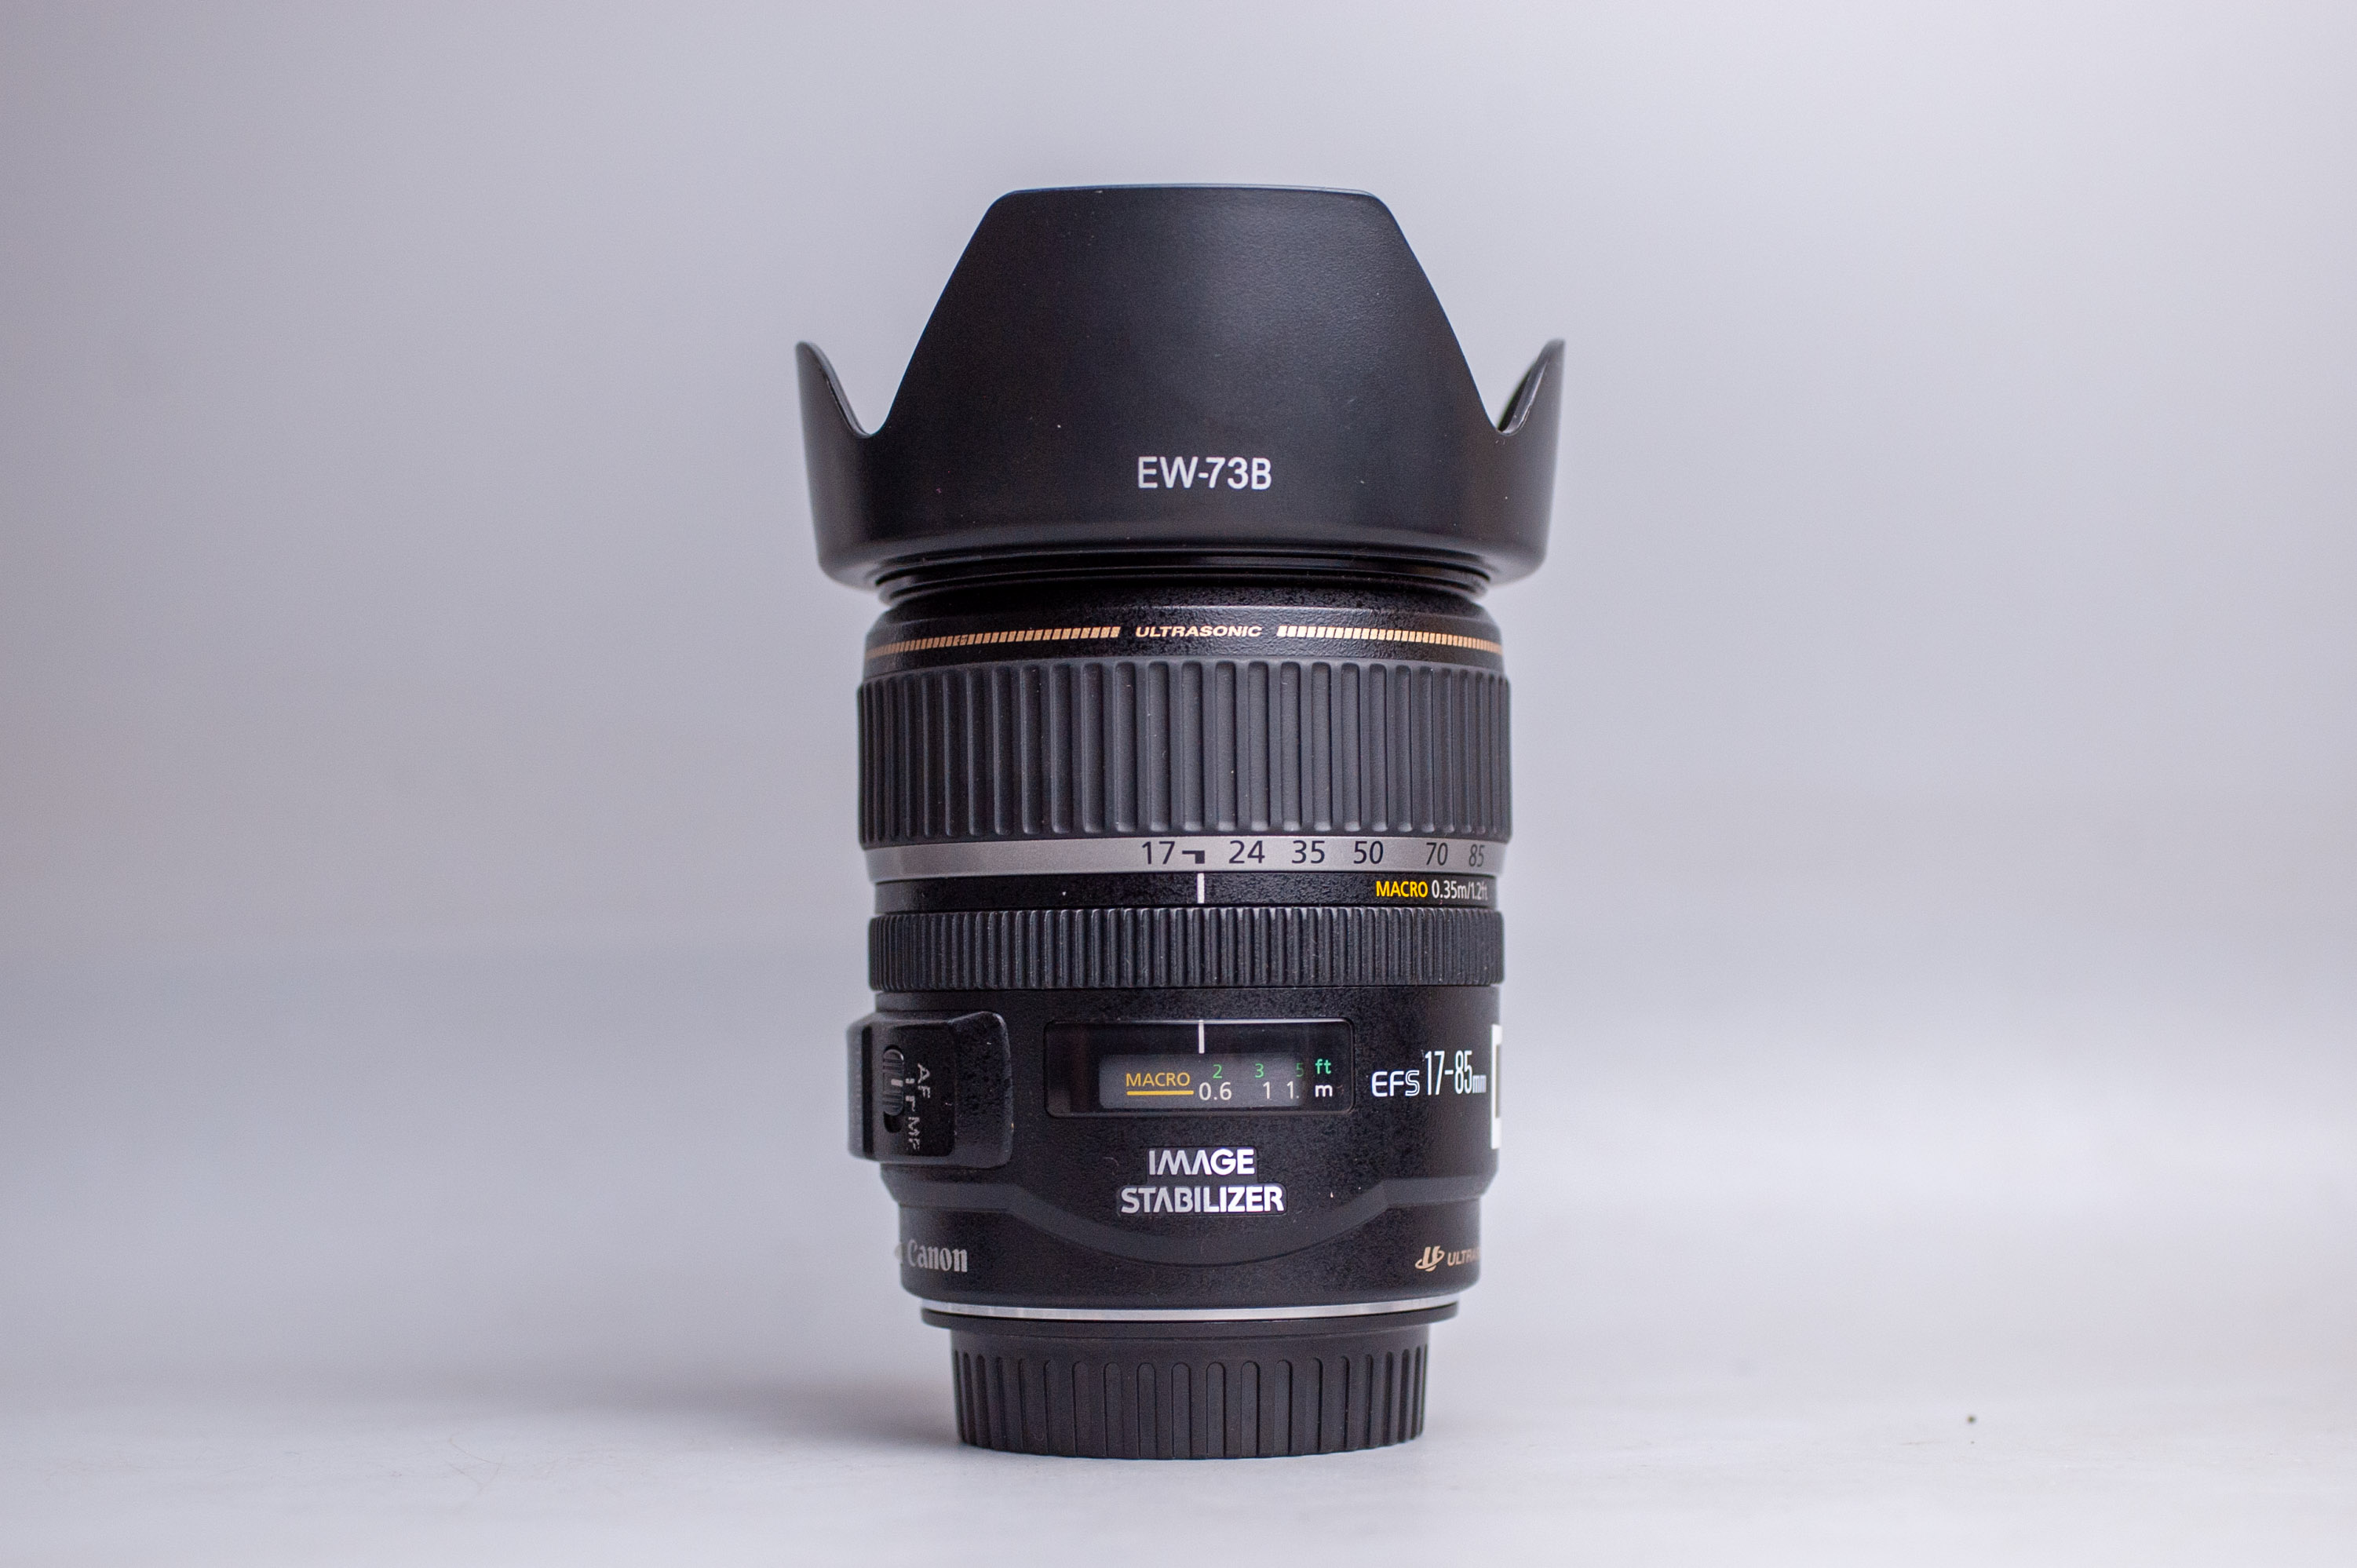 canon-17-85mm-f4-5-6-af-ef-s-is-usm-17-85-4-5-6-18390